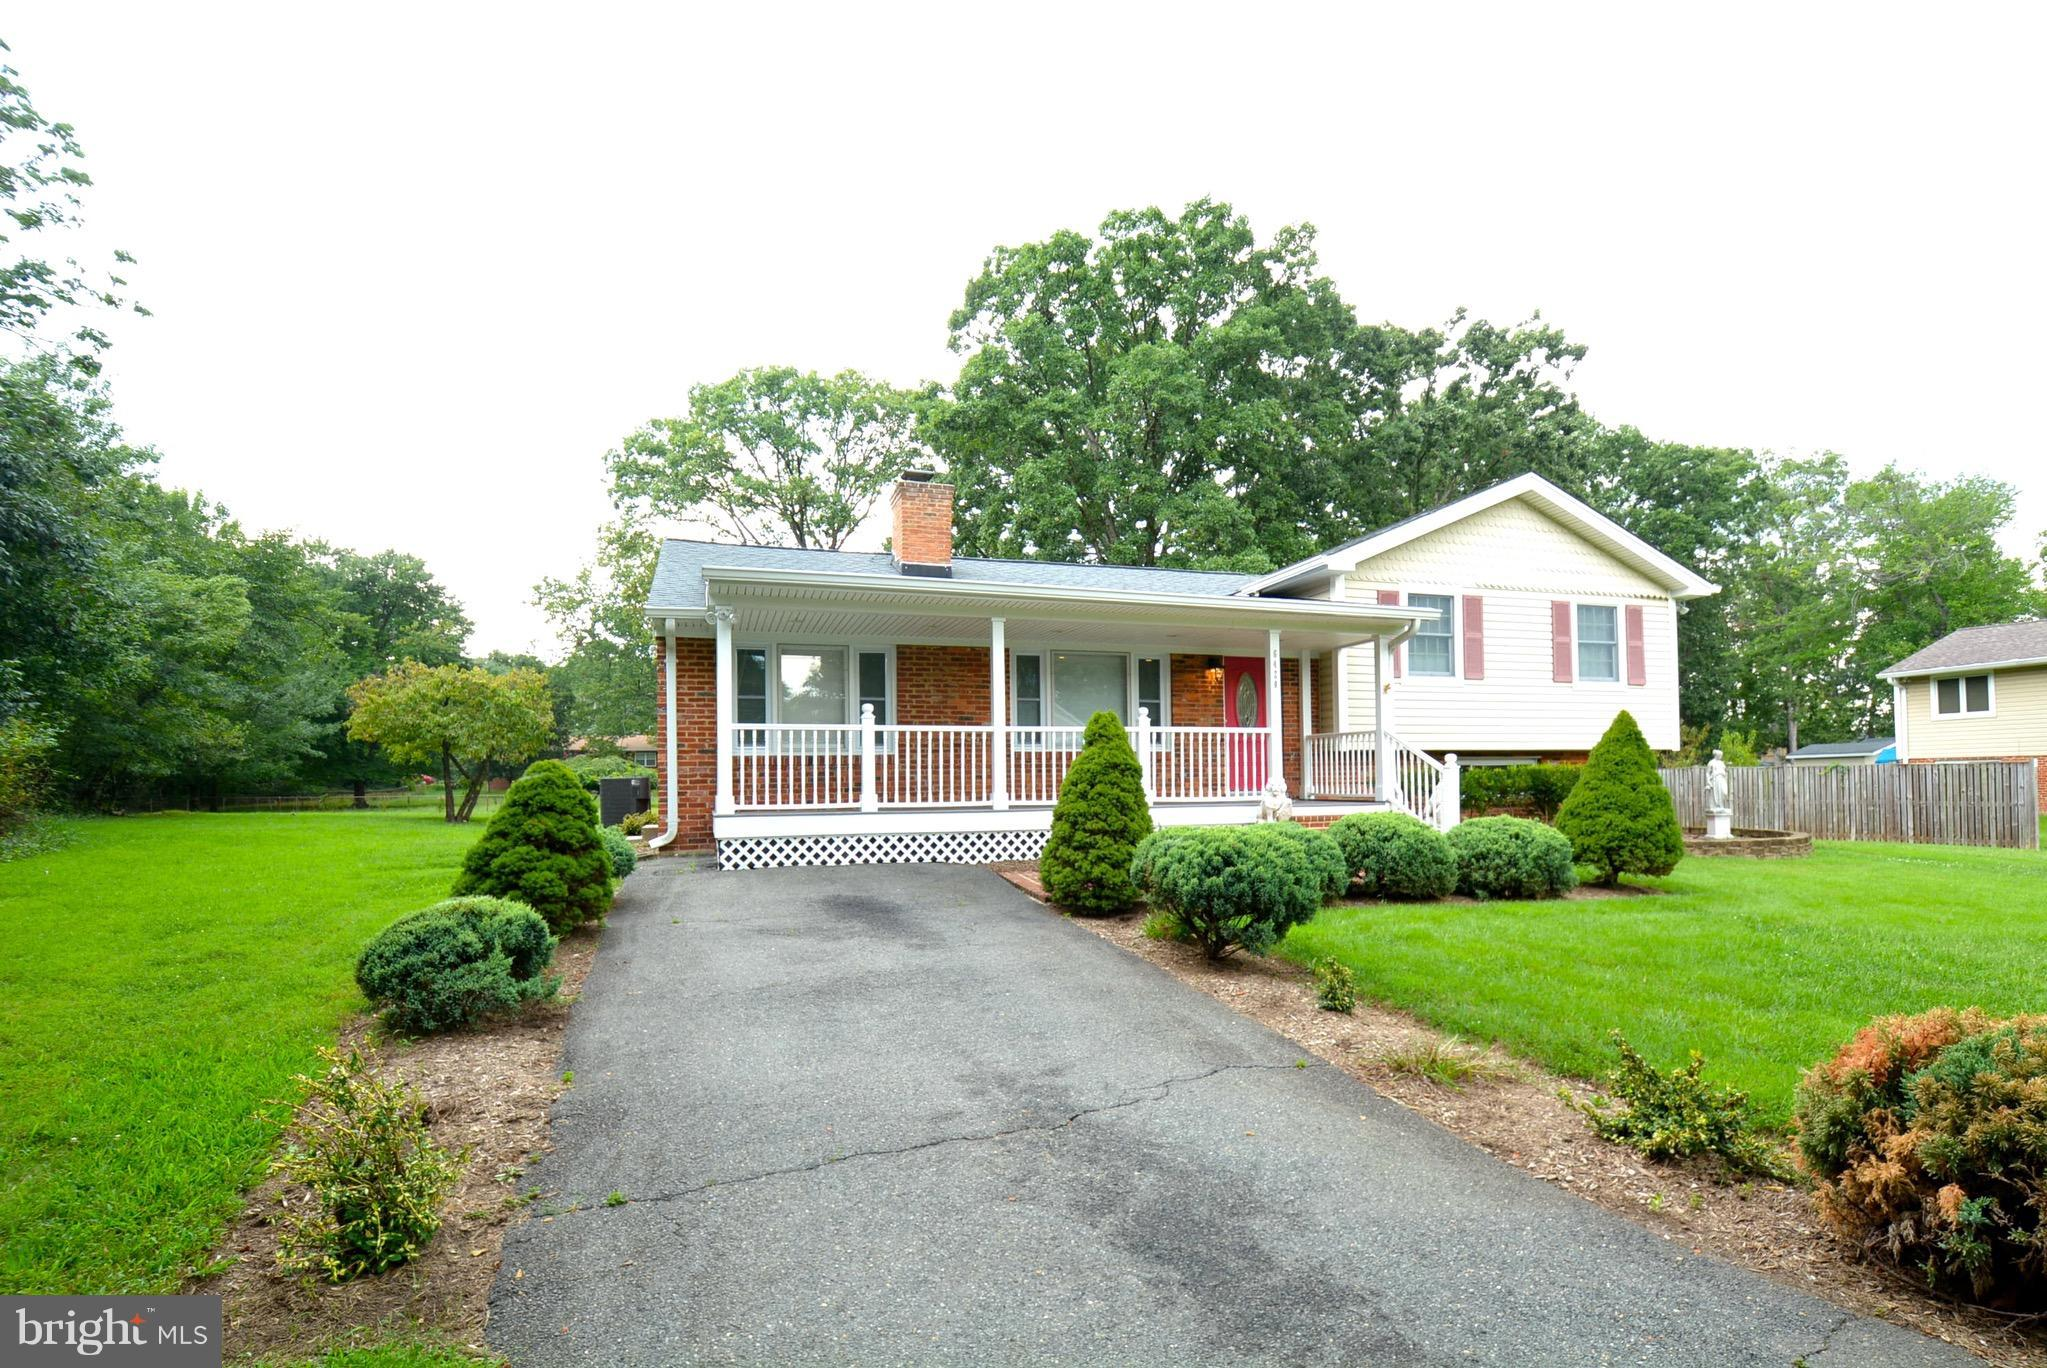 Great split level home on large private lot at the end of a cul-de-sac. New paint and carpet through-out. New double pane windows on main level. New kitchen and dining room floor.  Kitchen w/new granite counters, cabinets and appliances - Refrig, smooth top stove, microwave and dishwasher.  Large shed in back yard. Minutes to Pentagon, Fort Belvoir, schools, metro & 395.